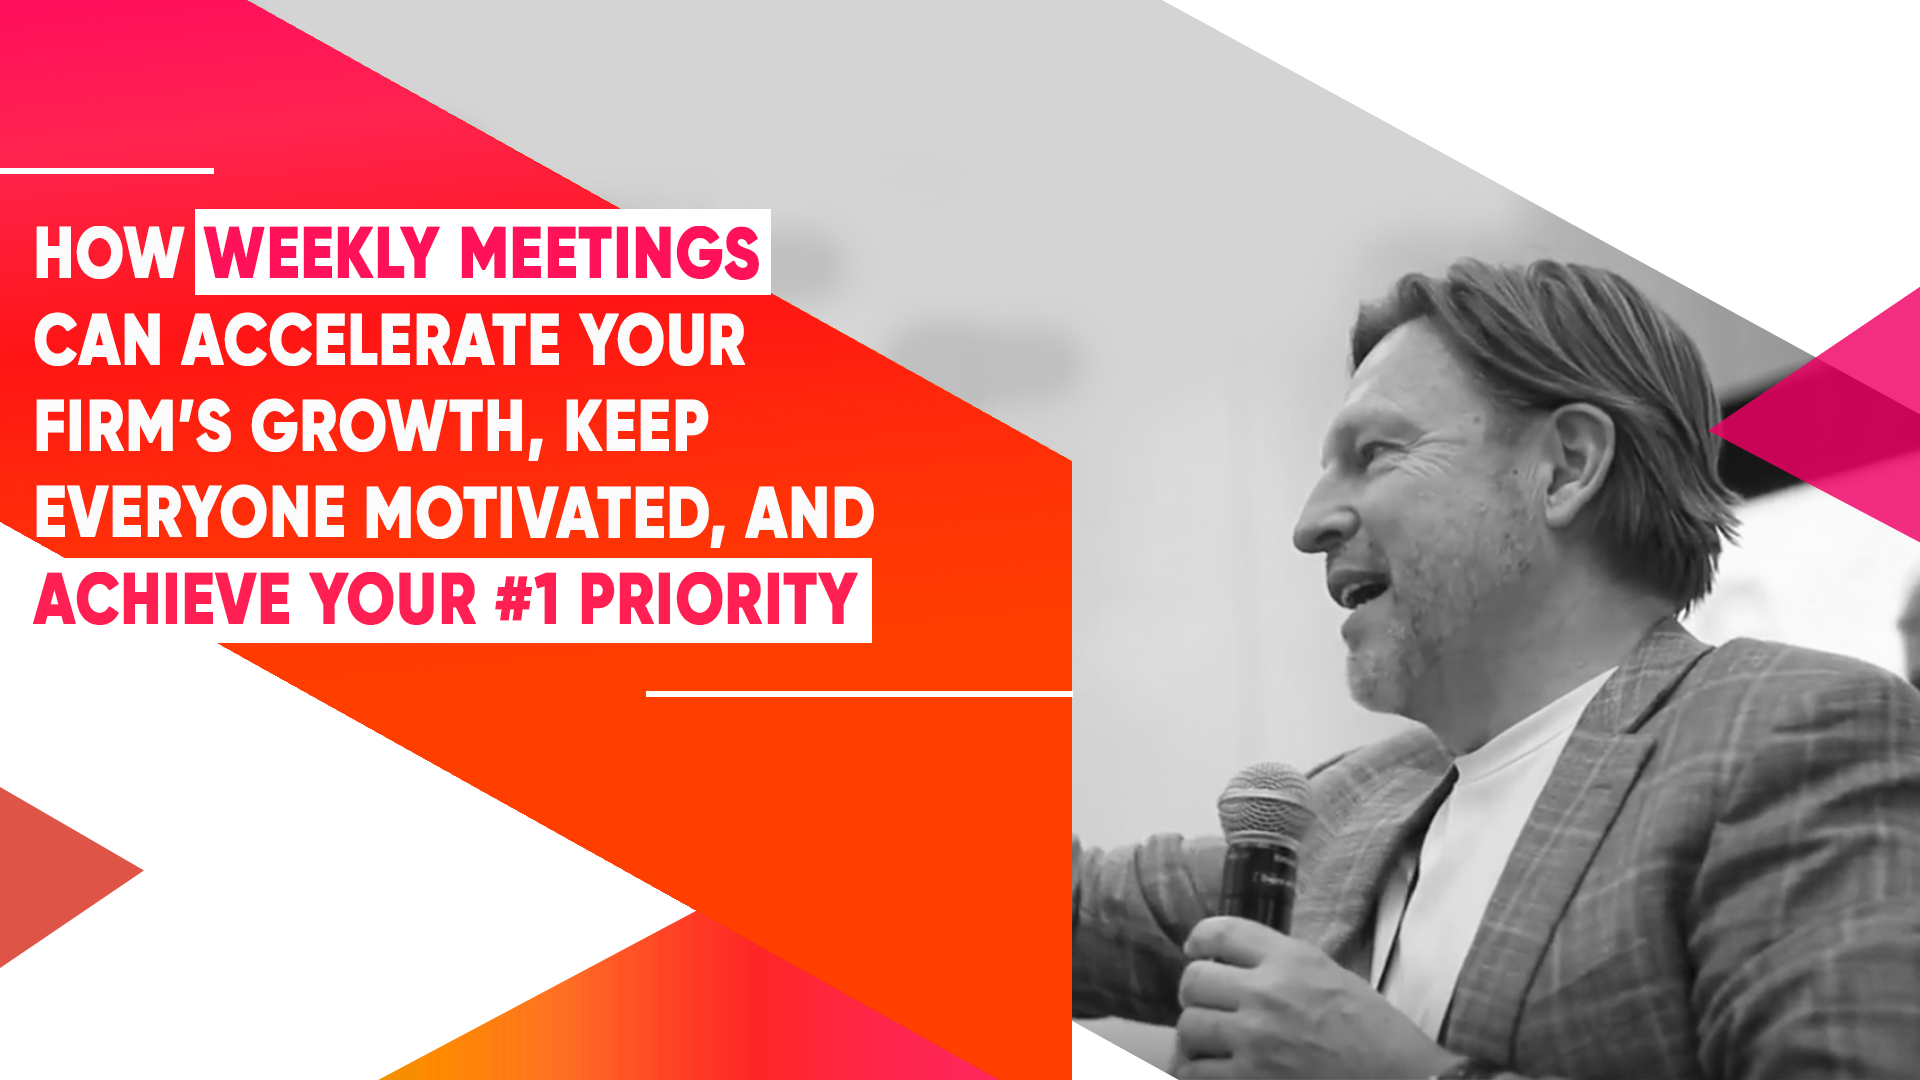 How Weekly Meetings Can Accelerate Your Firm's Growth, Keep Everyone Motivated, And Achieve Your #1 Priority